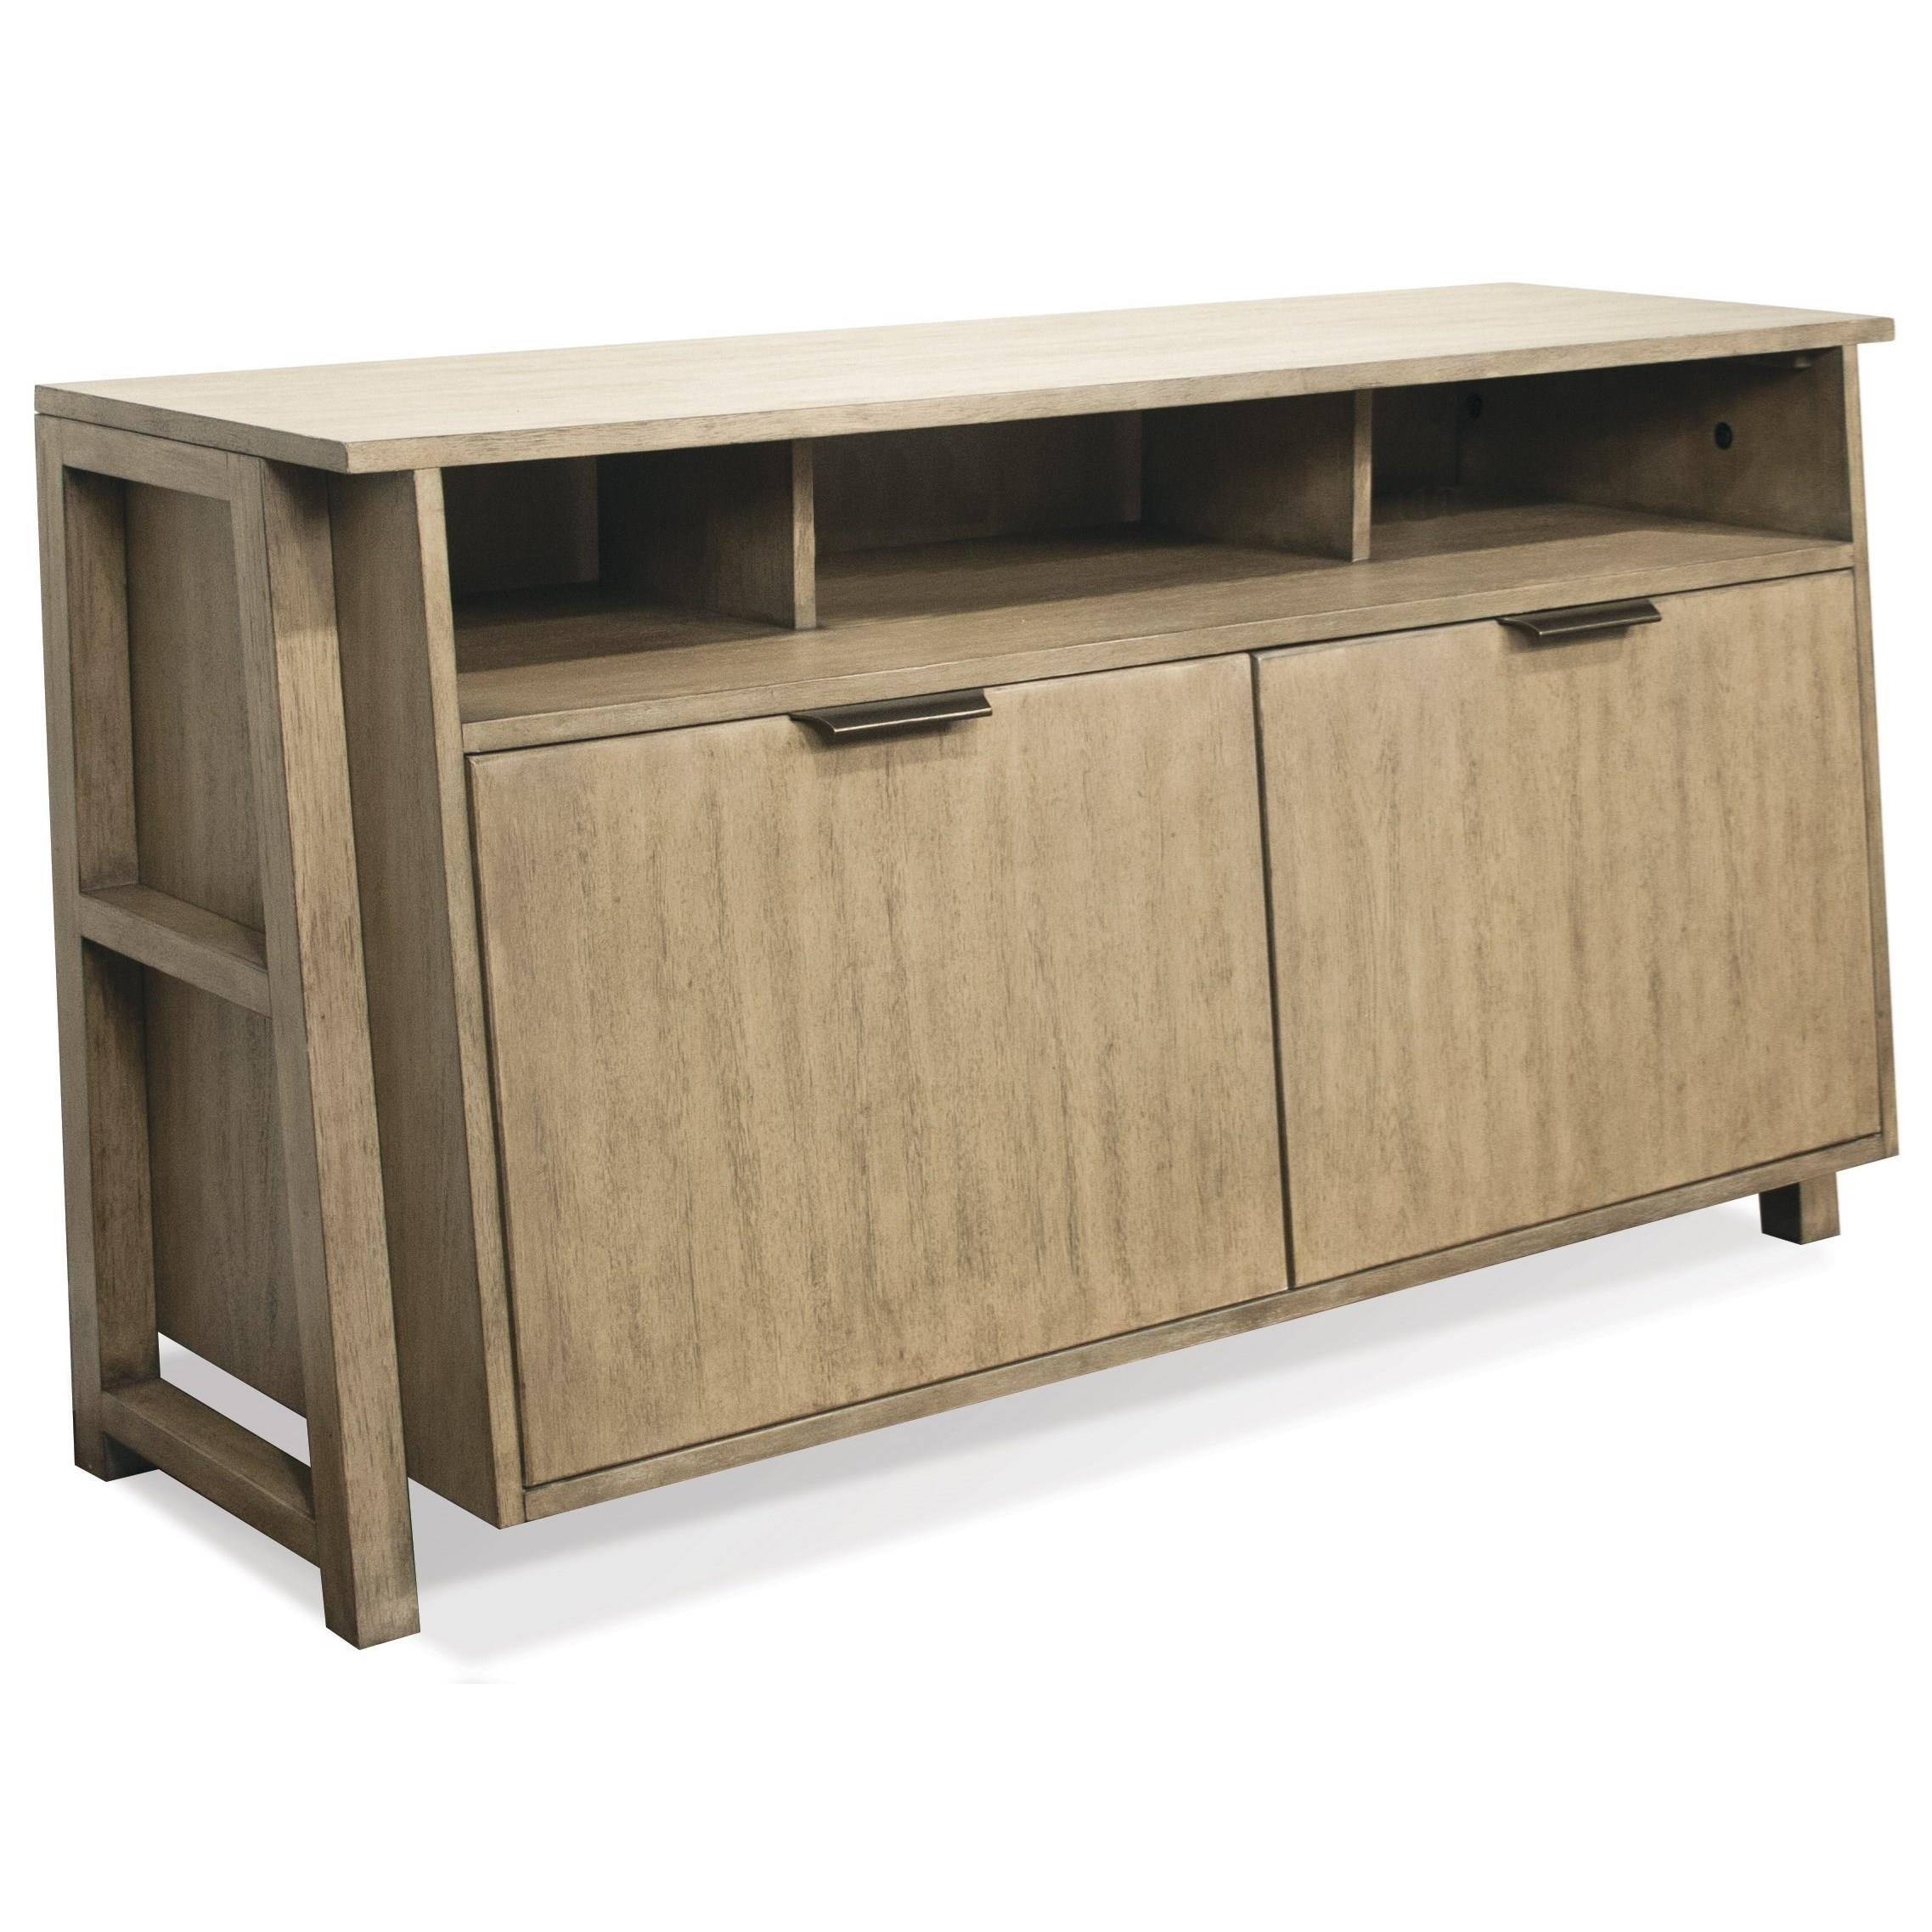 Riverside furniture perspectives entertainment console